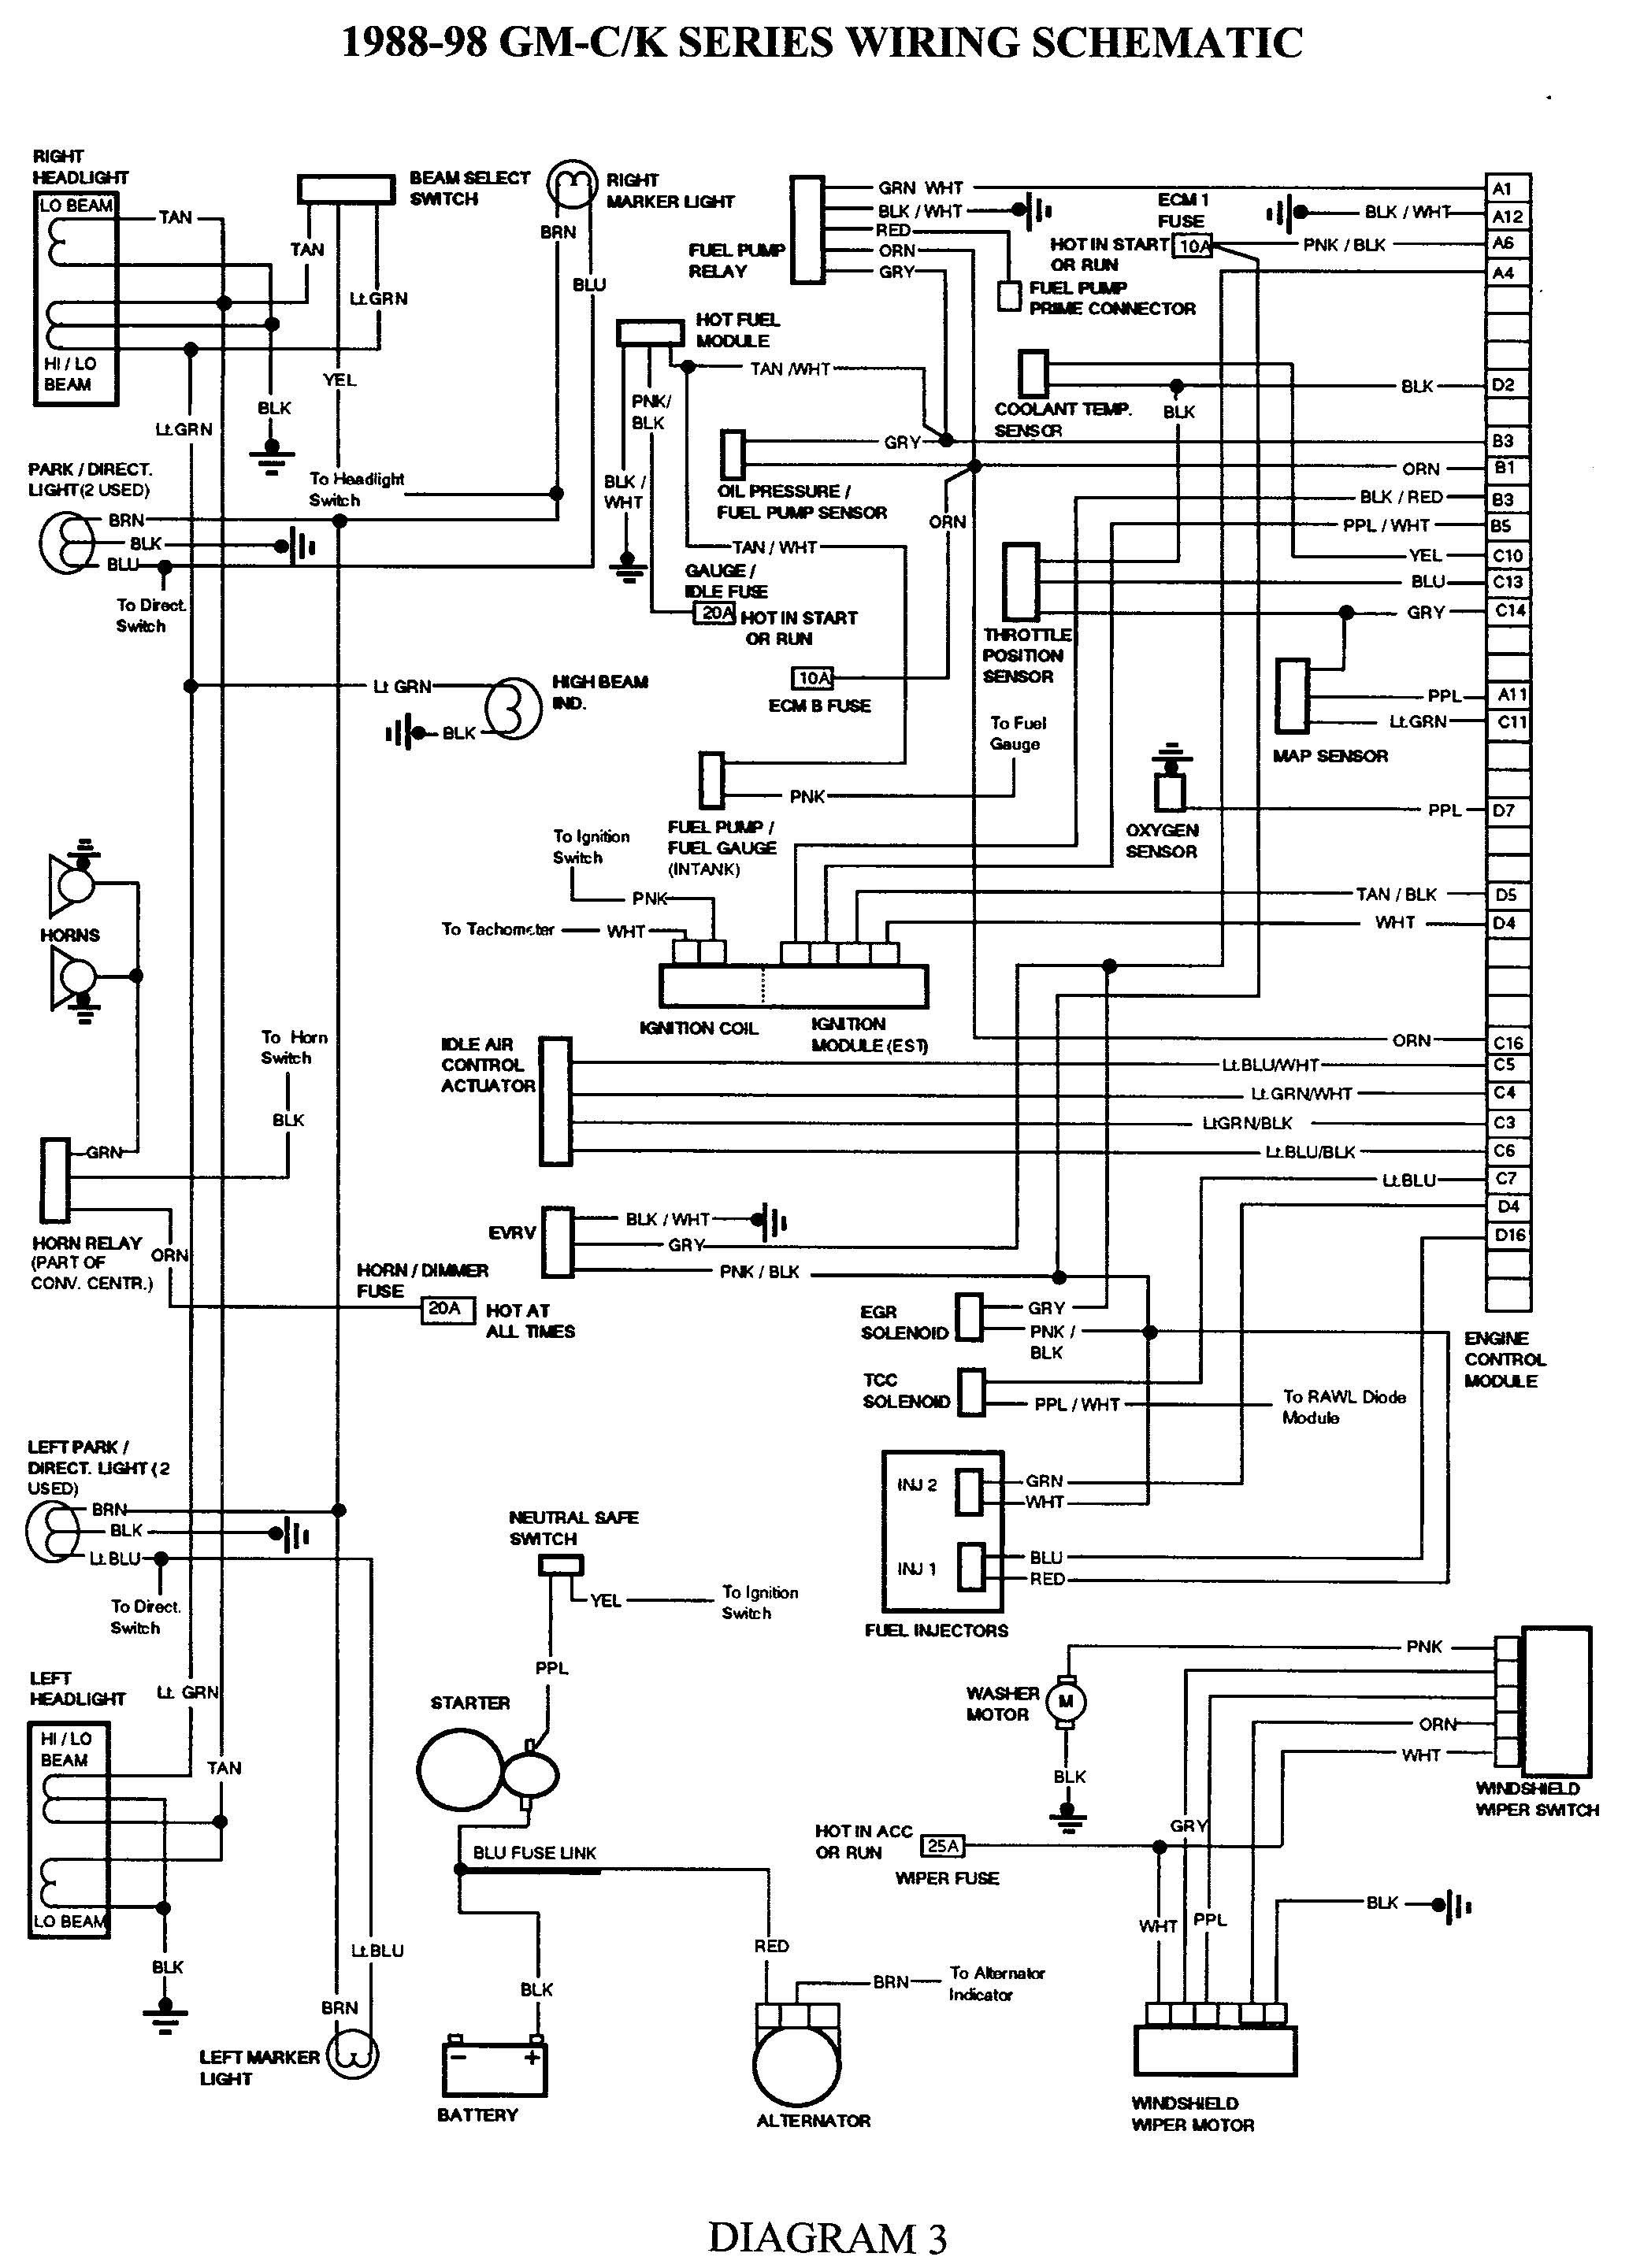 1997 Chevy S10 Wiring Diagram 1957 Heater 57 210 5 7 Vortec 4 3l Engine